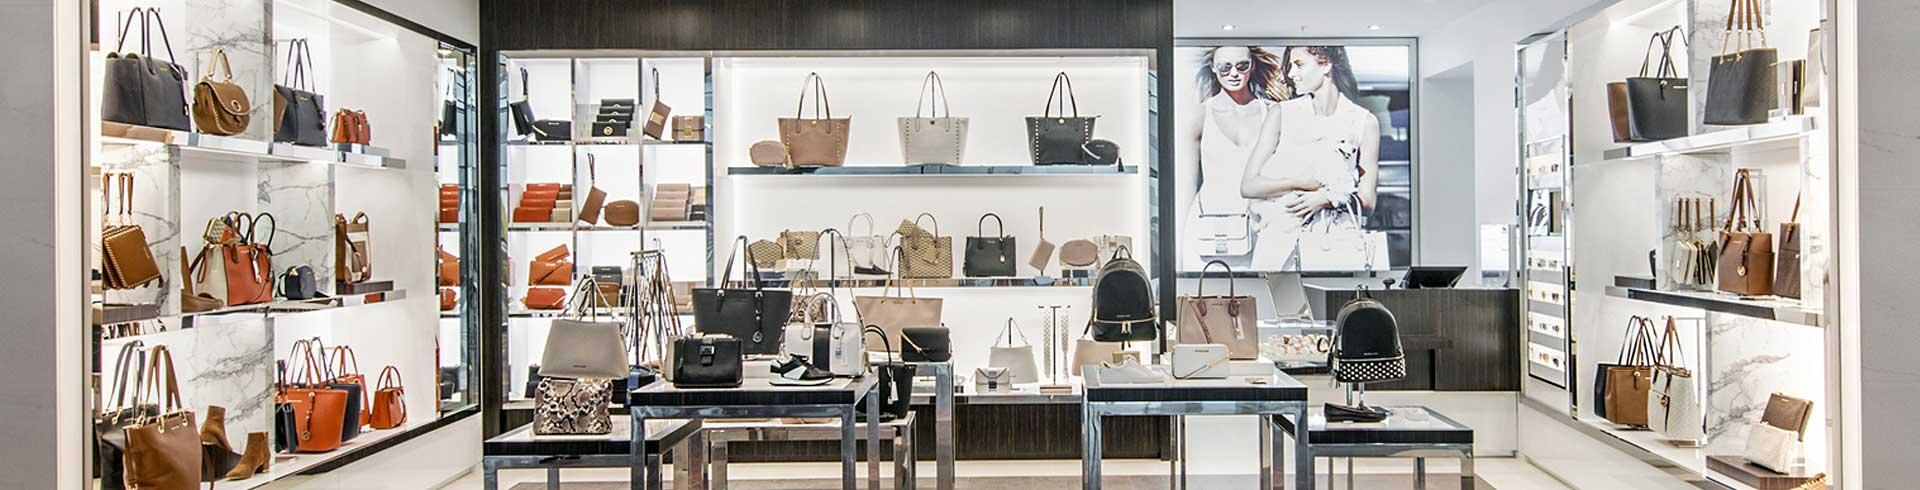 Michael Kors in Terminal 2 at Nice Côte d'Azur Airport